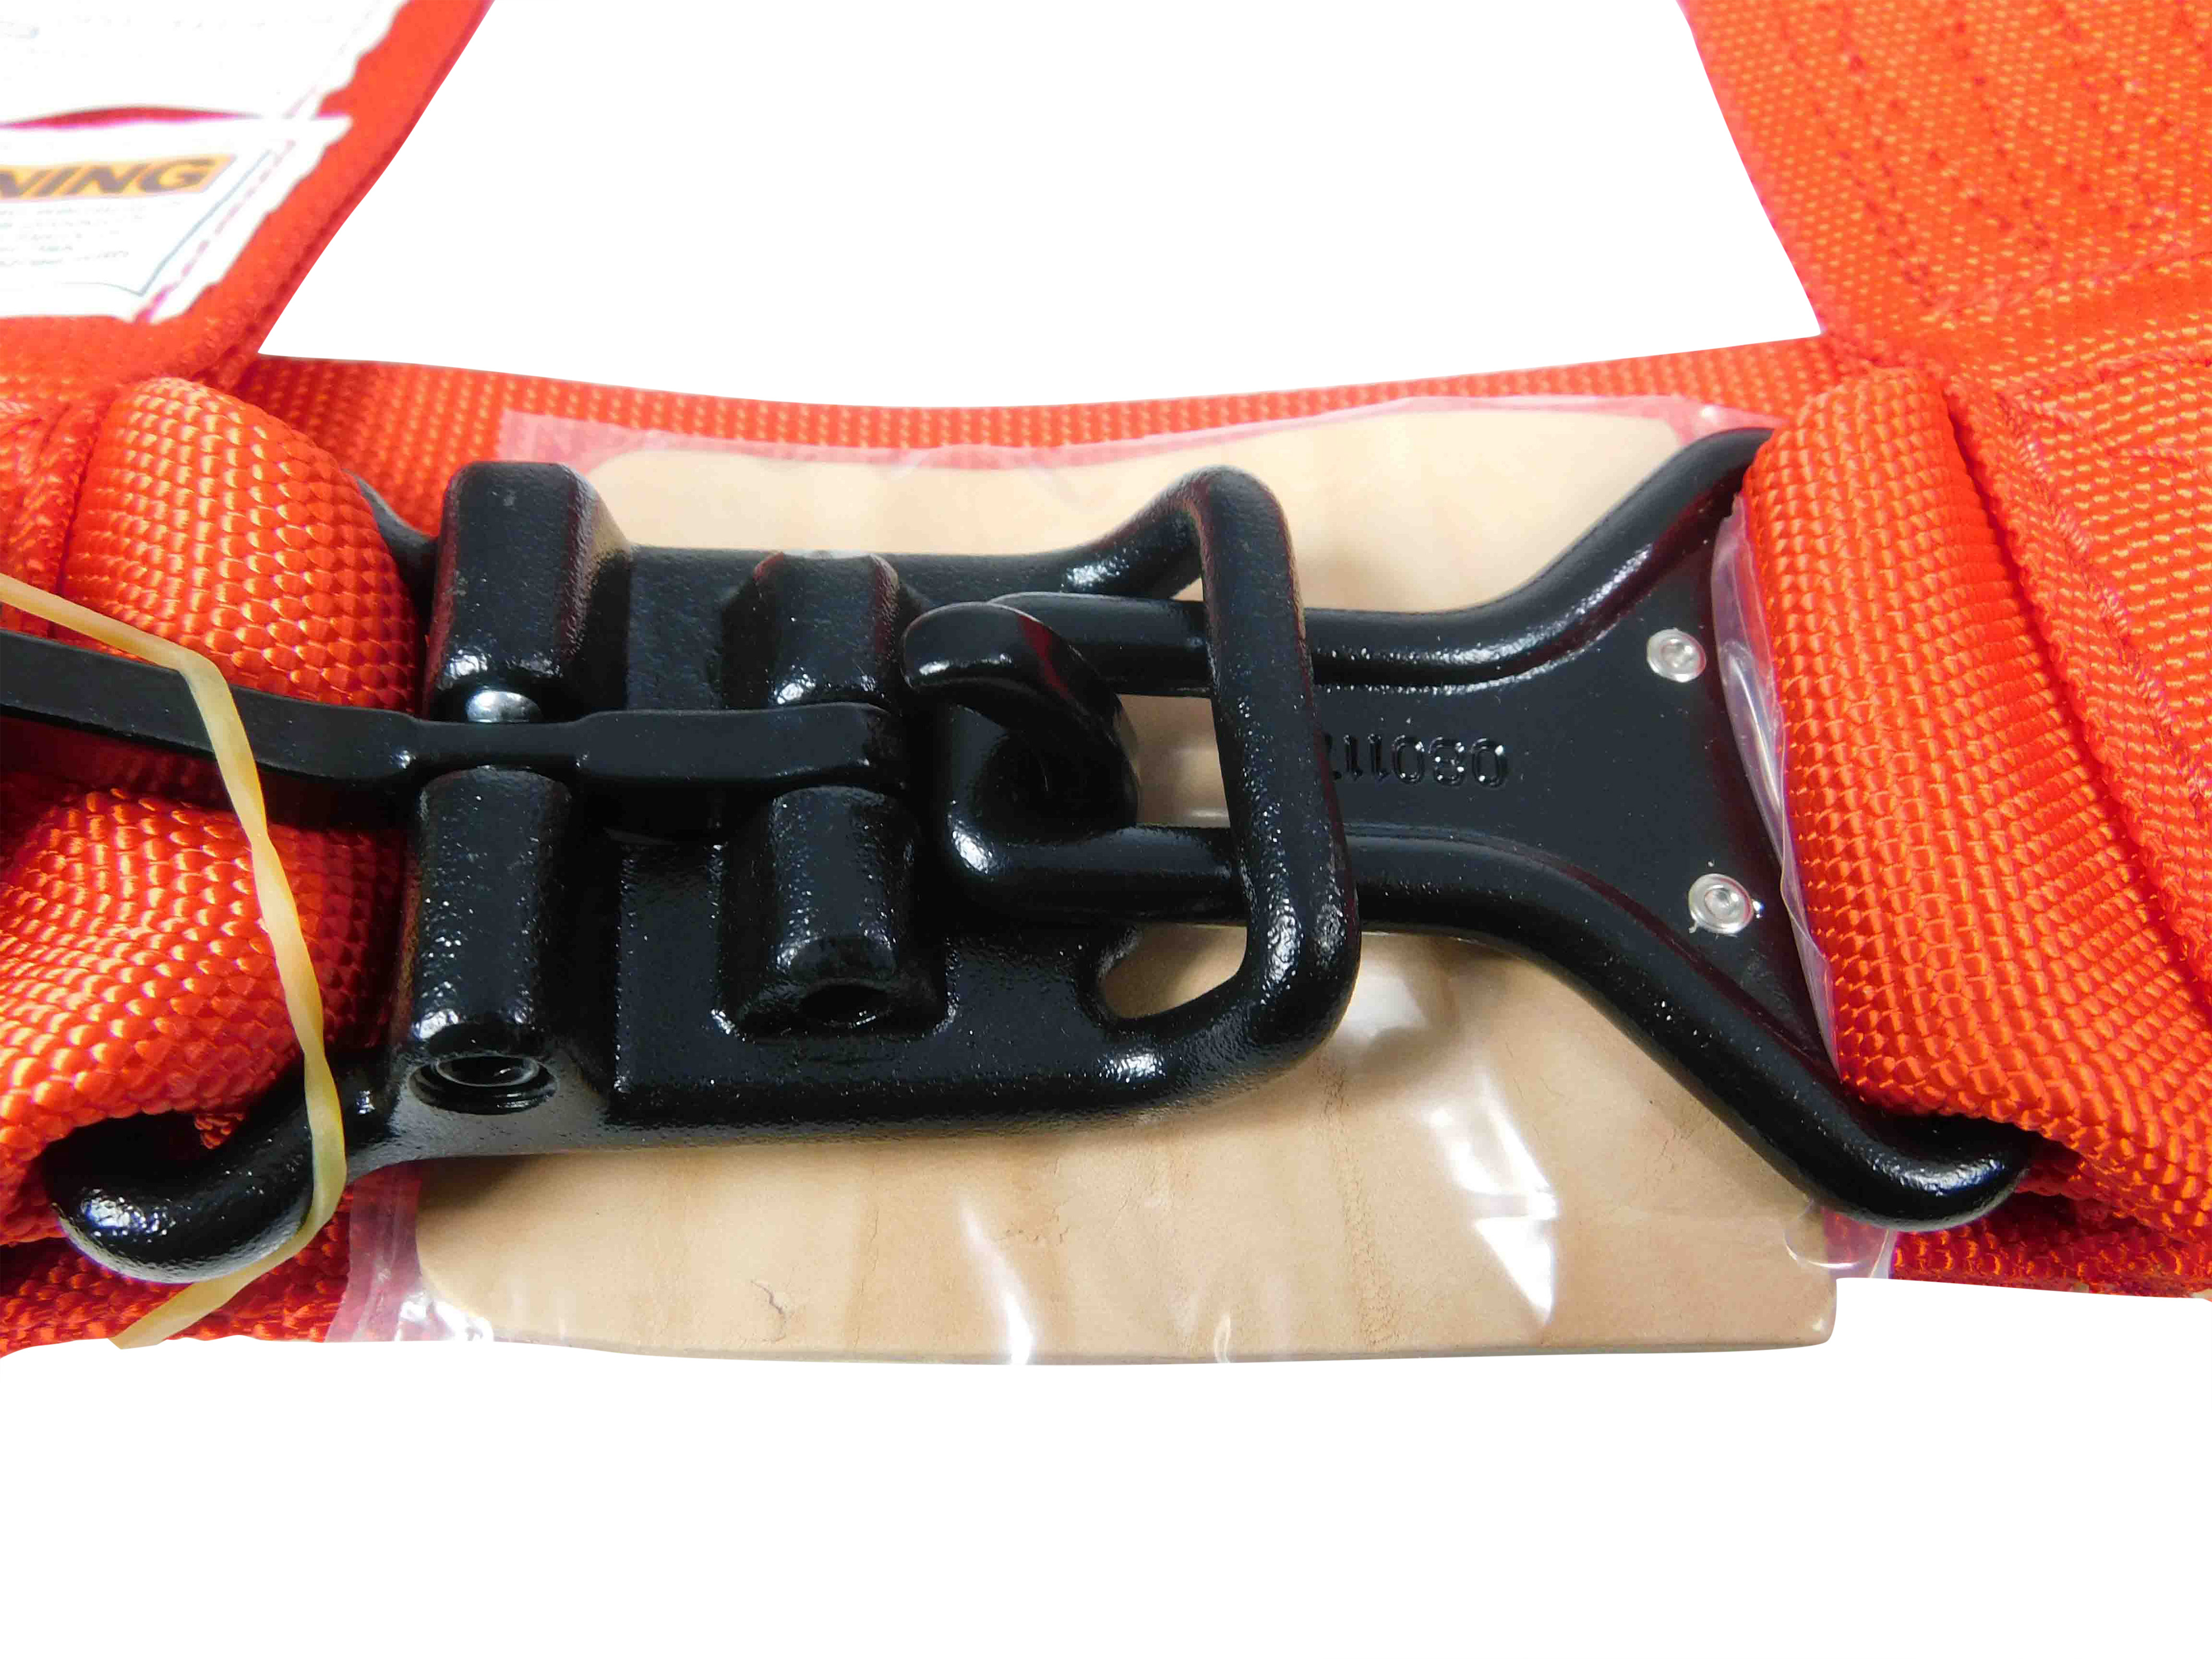 Pro-Armor-A114230RD-4-Point-3inch-Harness-with-Sewn-in-Pads-Red-image-4